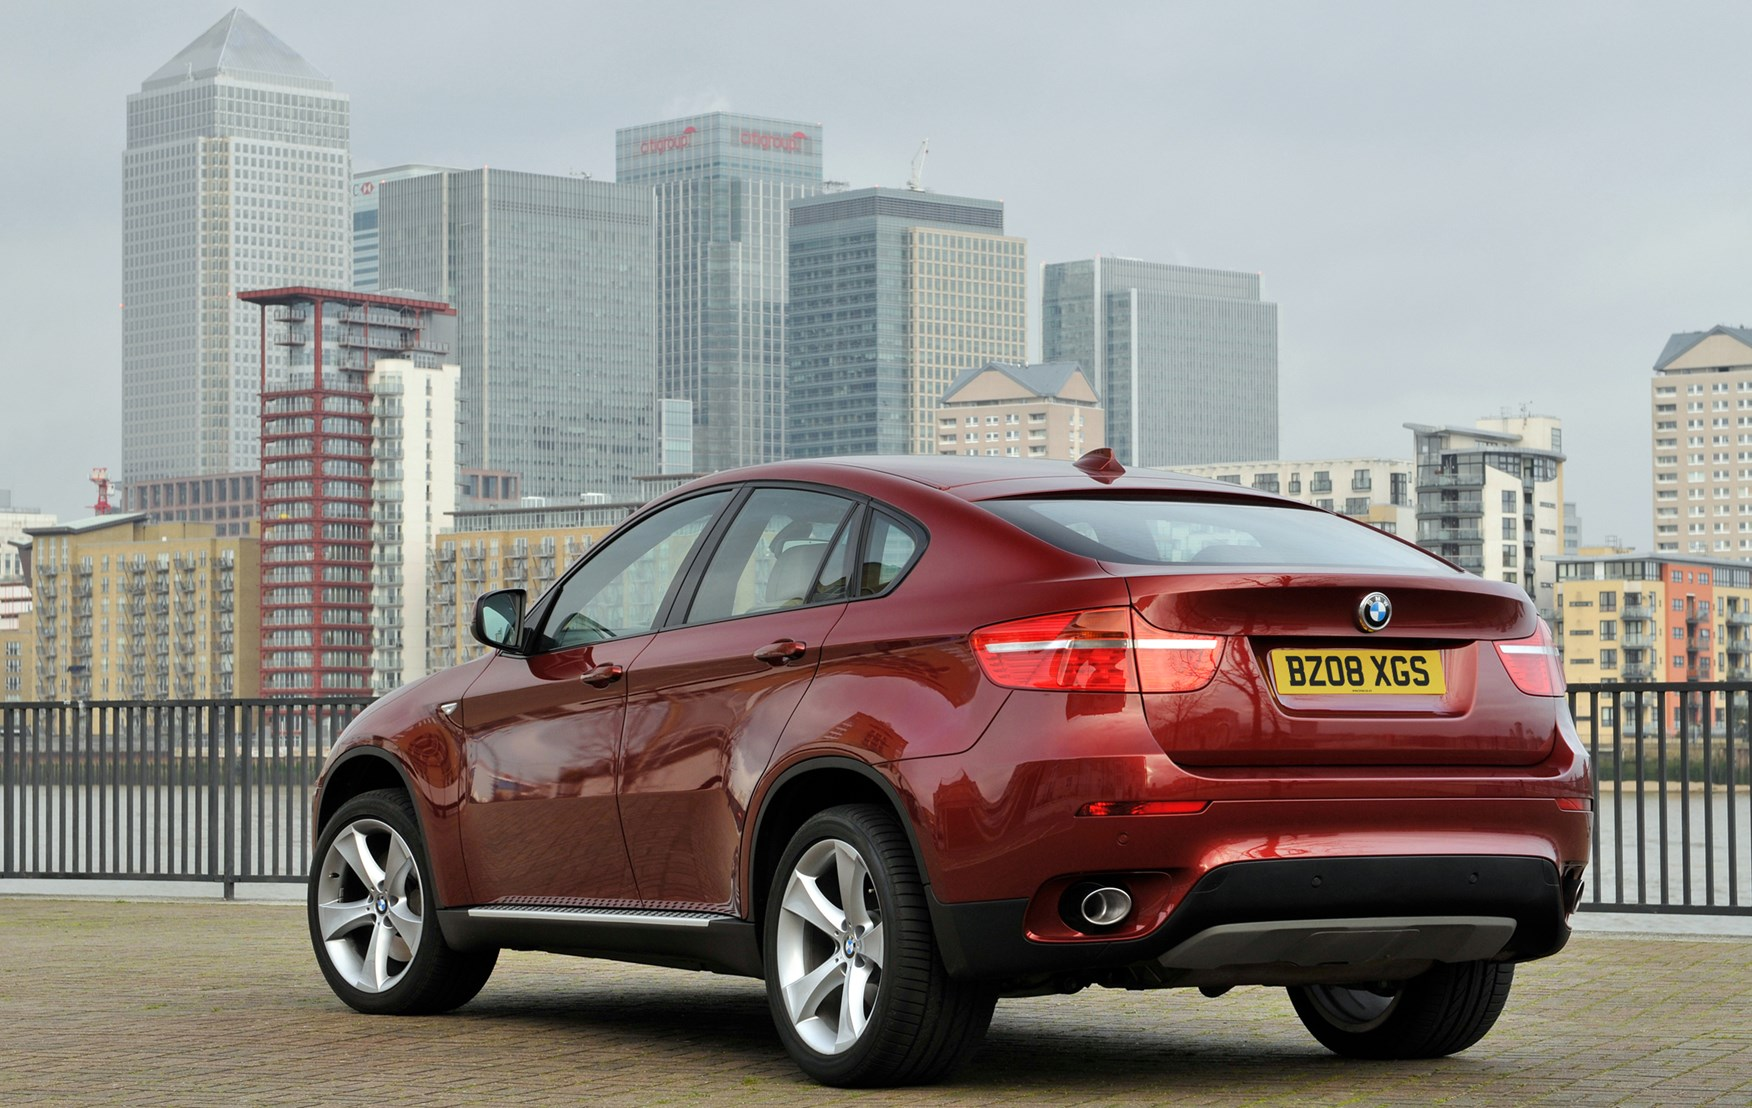 Bmw X6 For Sale Used Bmw X6 Cars Parkers Autos Post